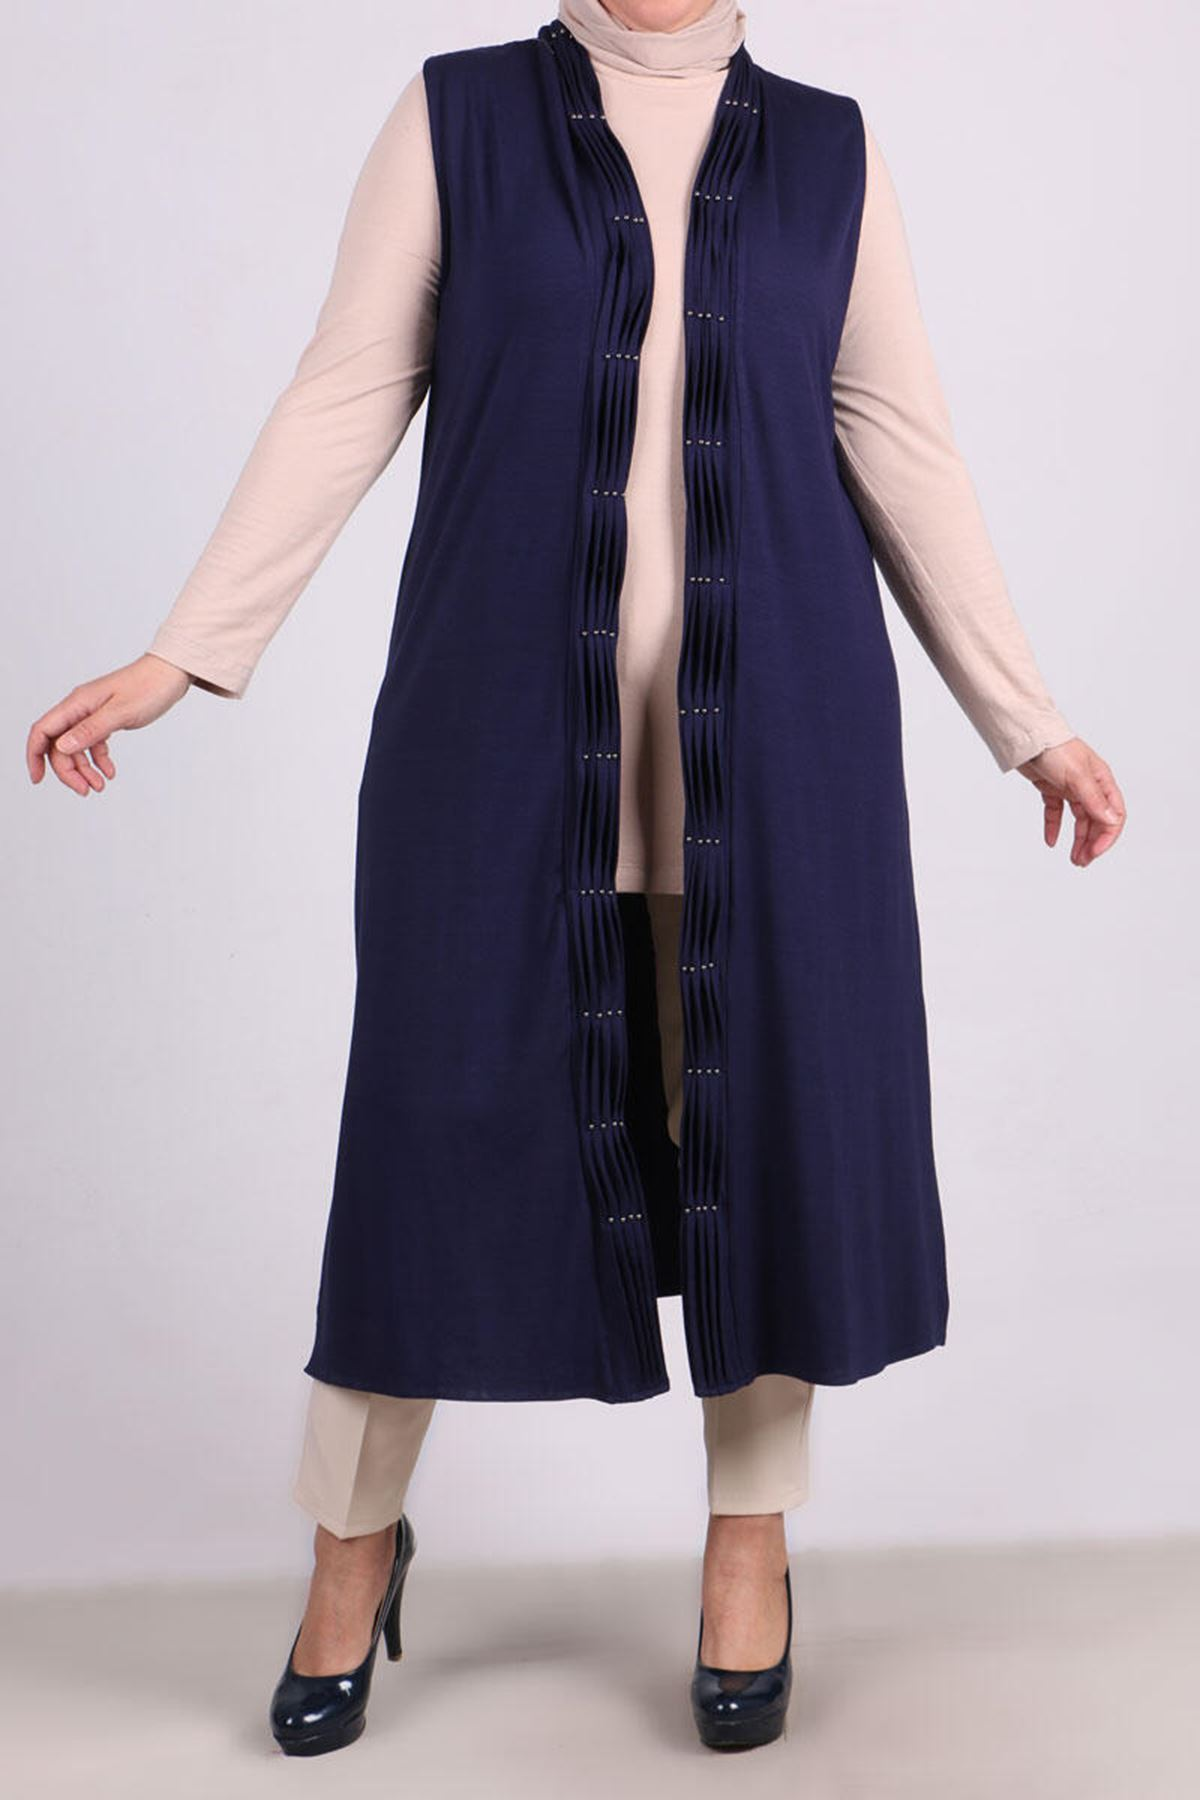 4050 Pleated-Pearly Plus Size Vest - Navy blue